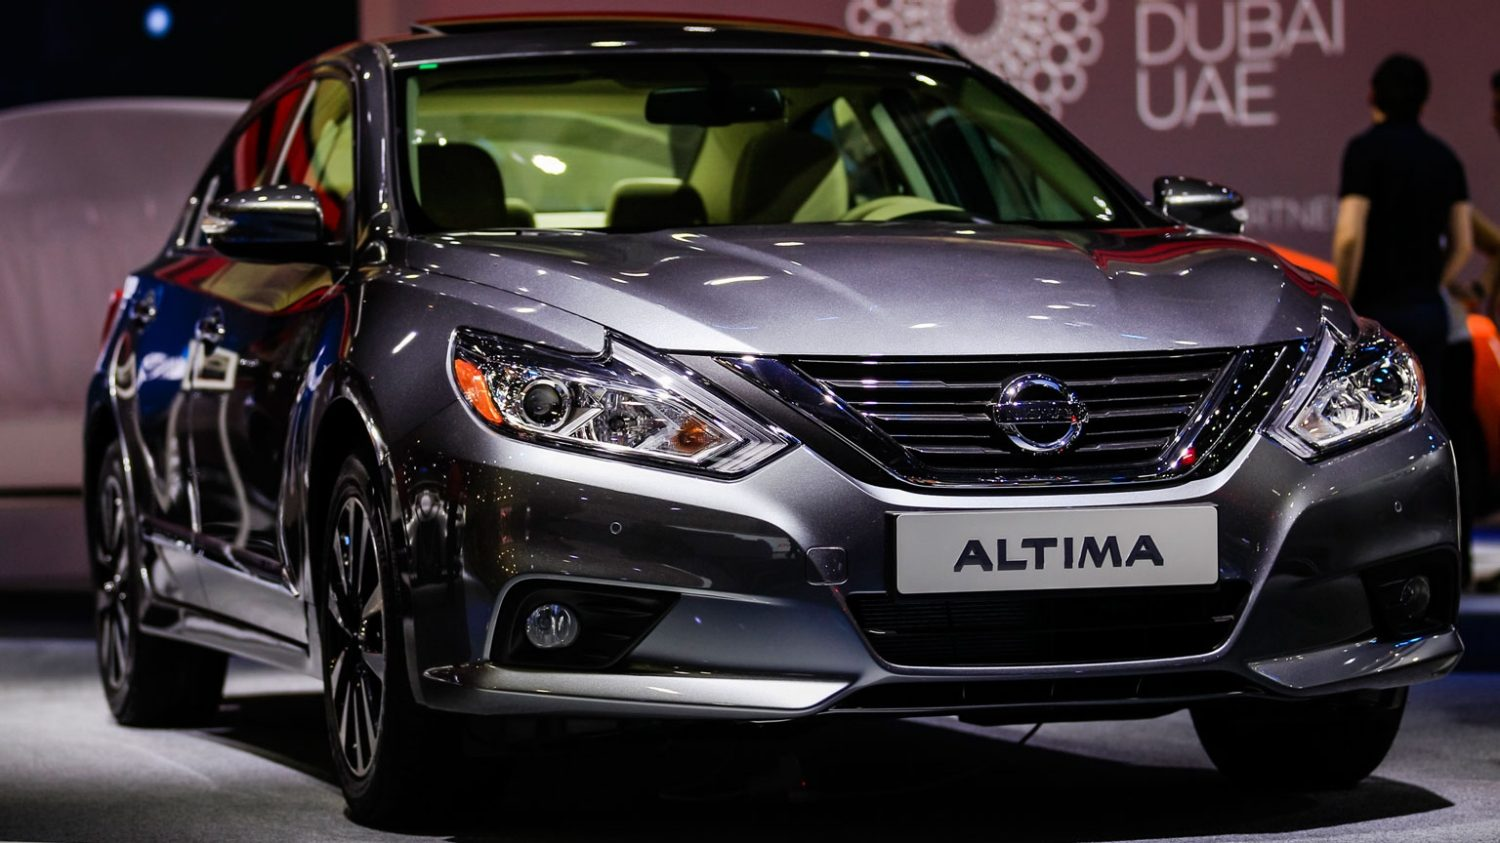 Nissan Reports Growing Market Share and Sales Volume for Altima in KSA